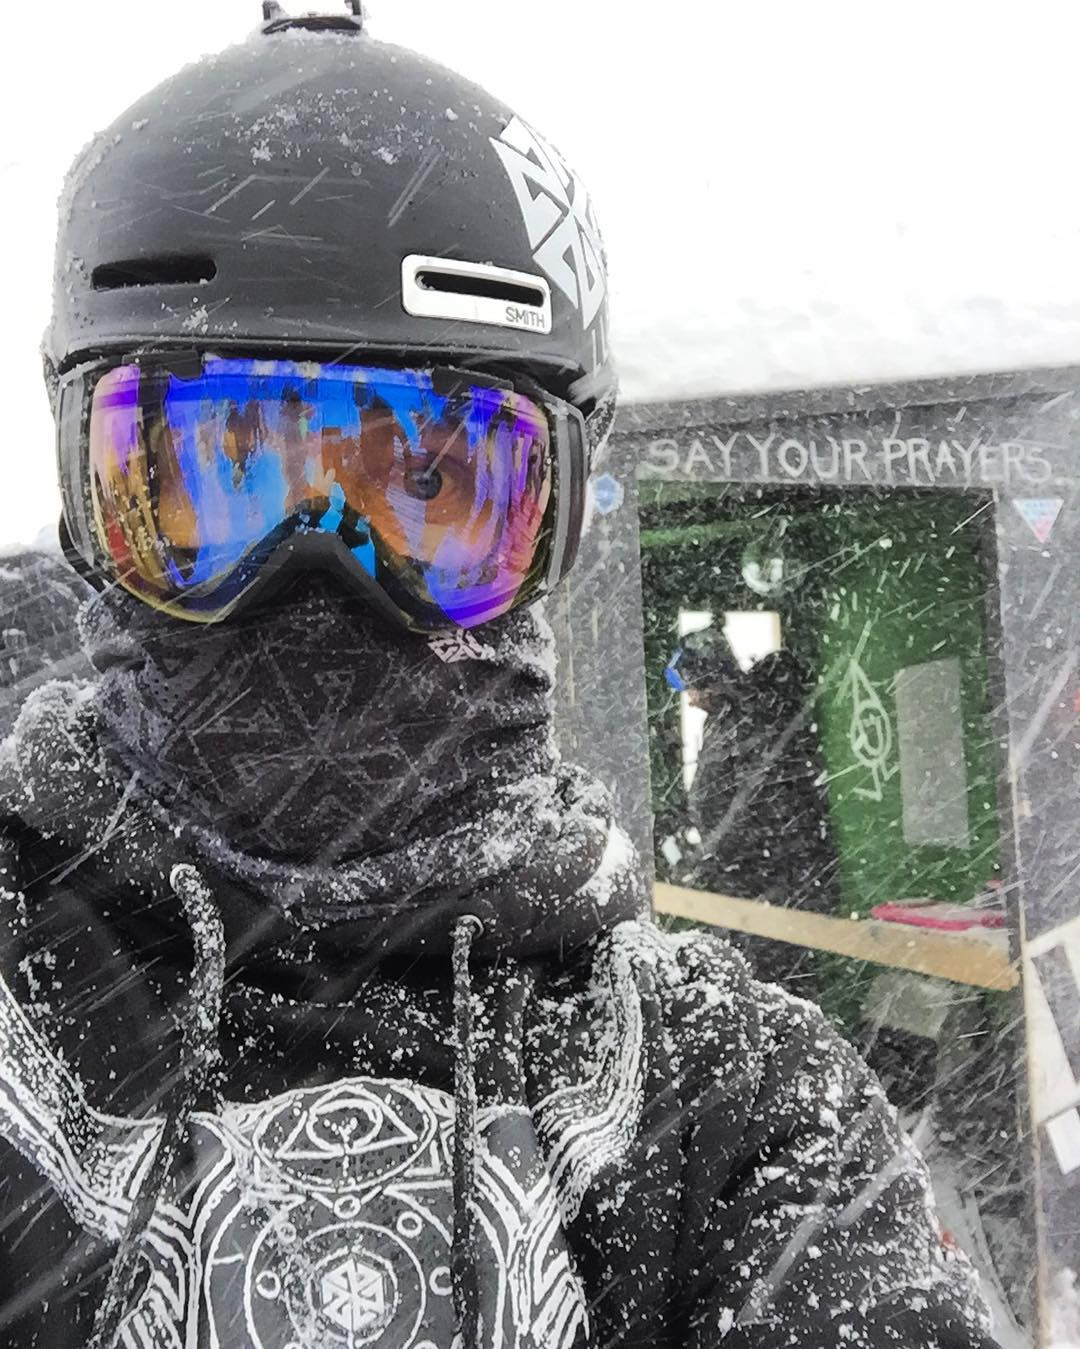 #A7CO founder @robkingwill just won the #legendarymtbakerbankedslalom rocking his Mesh Faceshield start to finish in the course to protect his face from the full blizzard conditions. Full breathability and no goggle fog! #provenperformance #avalon7...